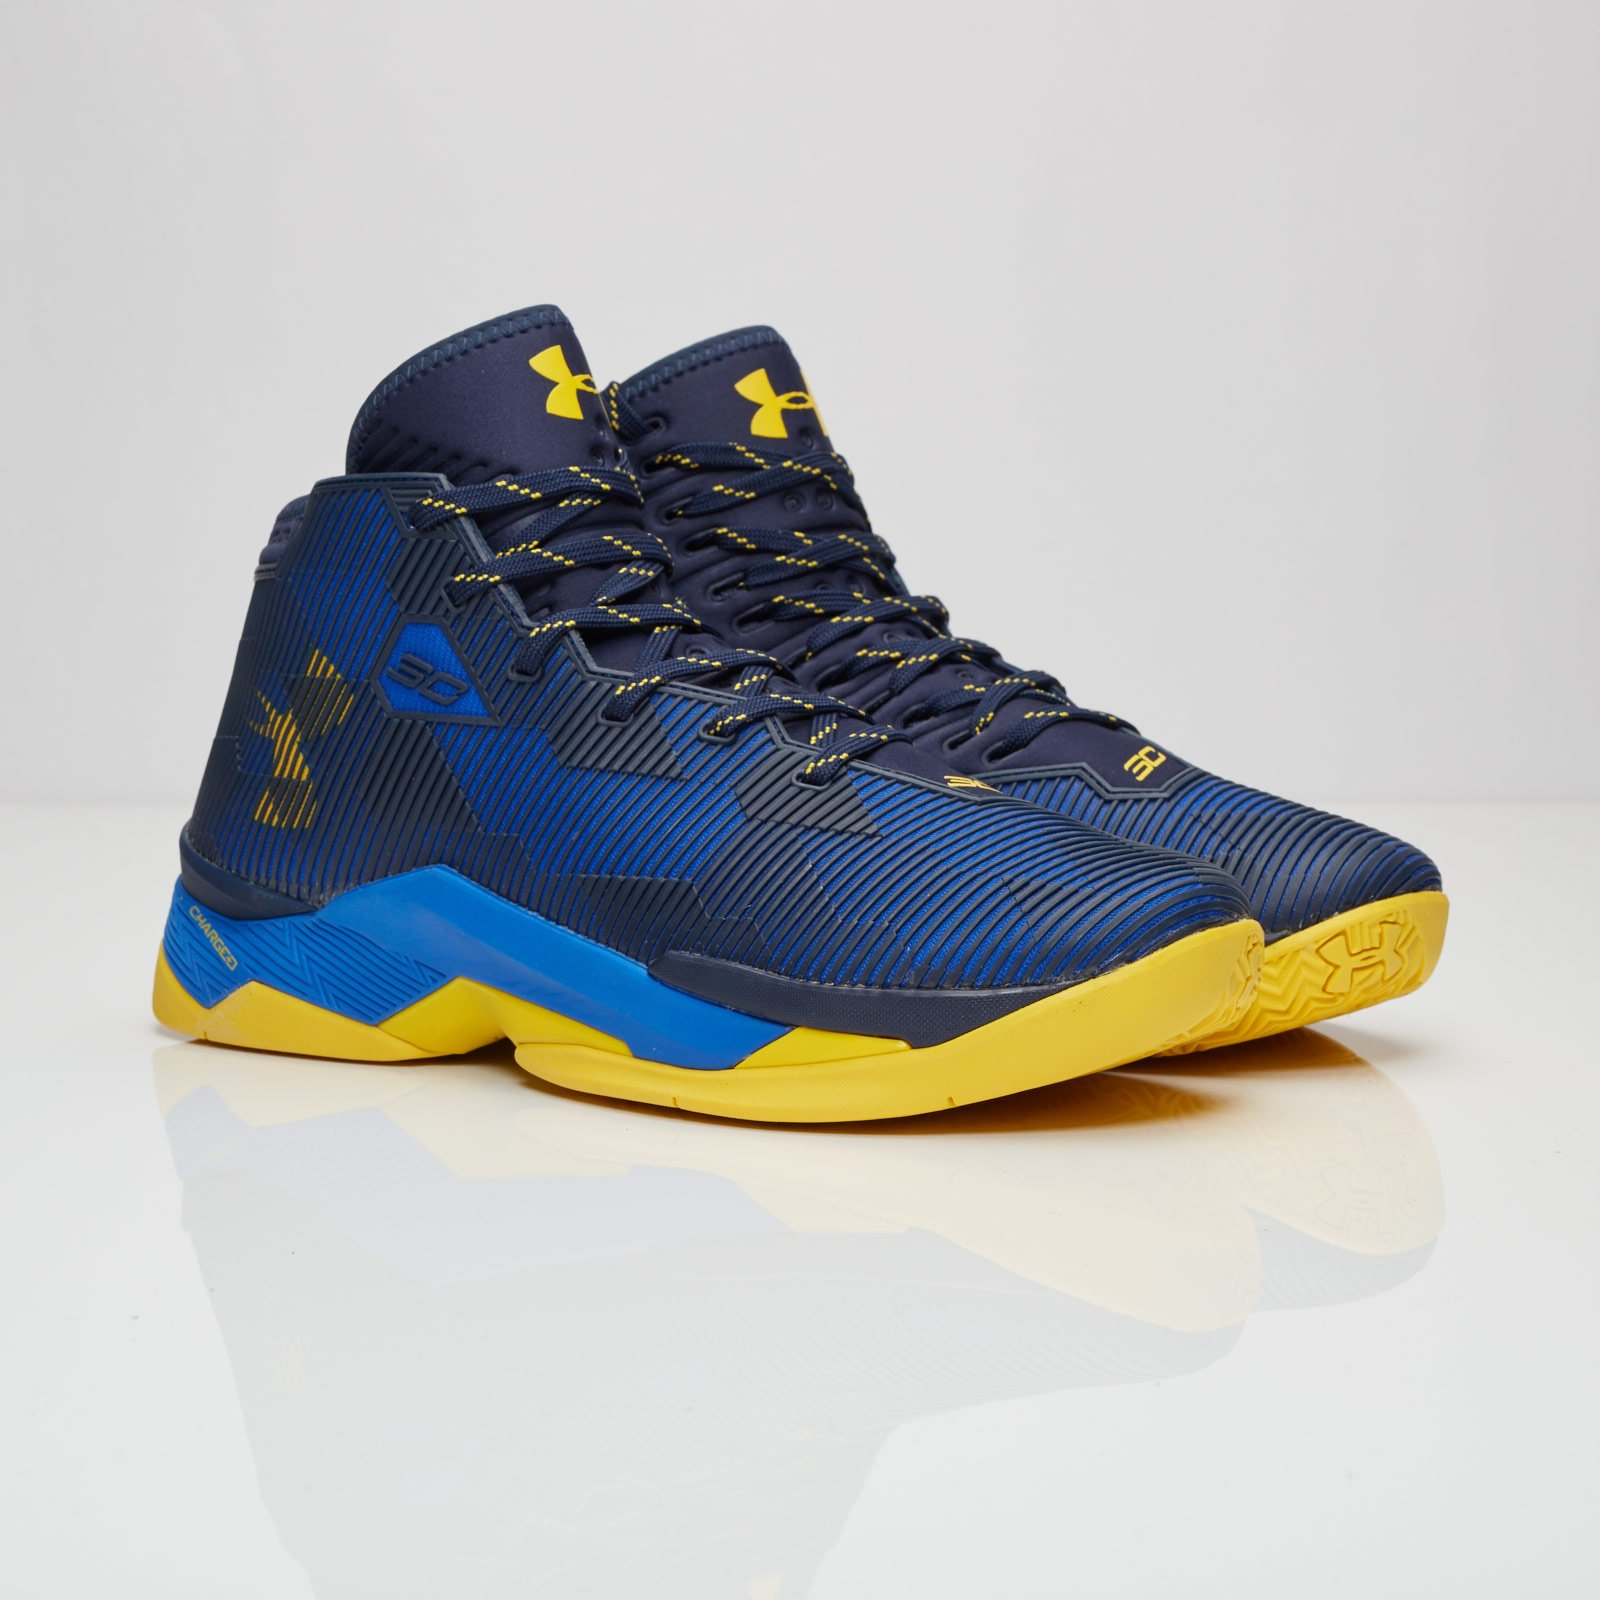 1a00137108dd Under Armour Curry 2.5 - 1274425-400 - Sneakersnstuff